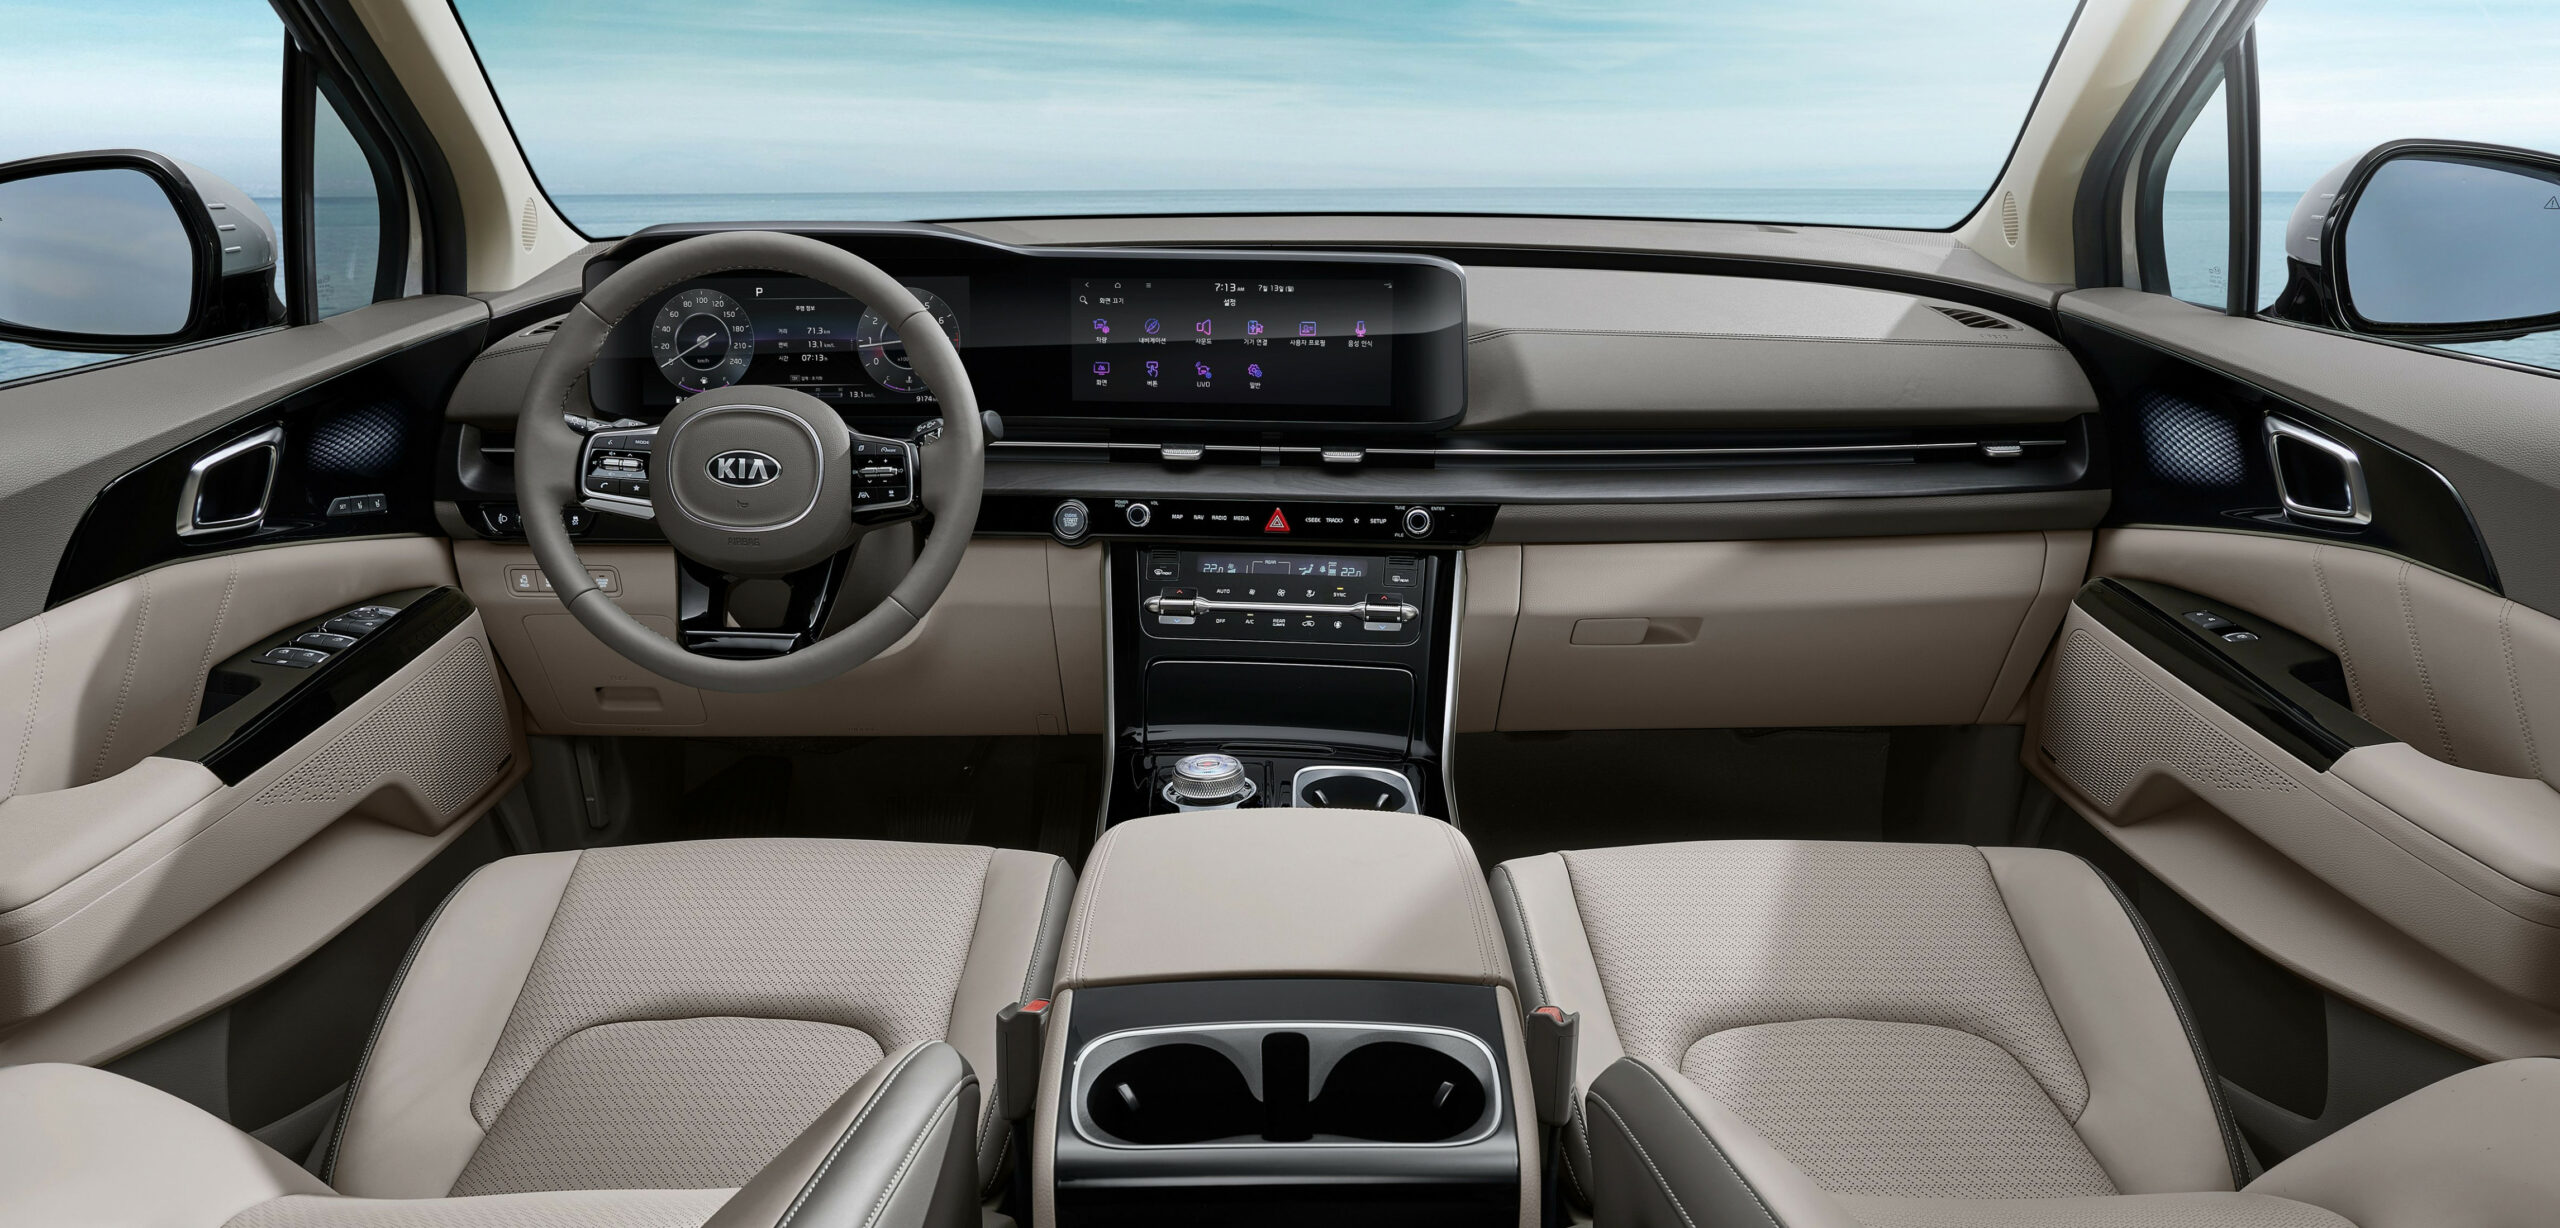 Performance and New Engine Kia In 2022